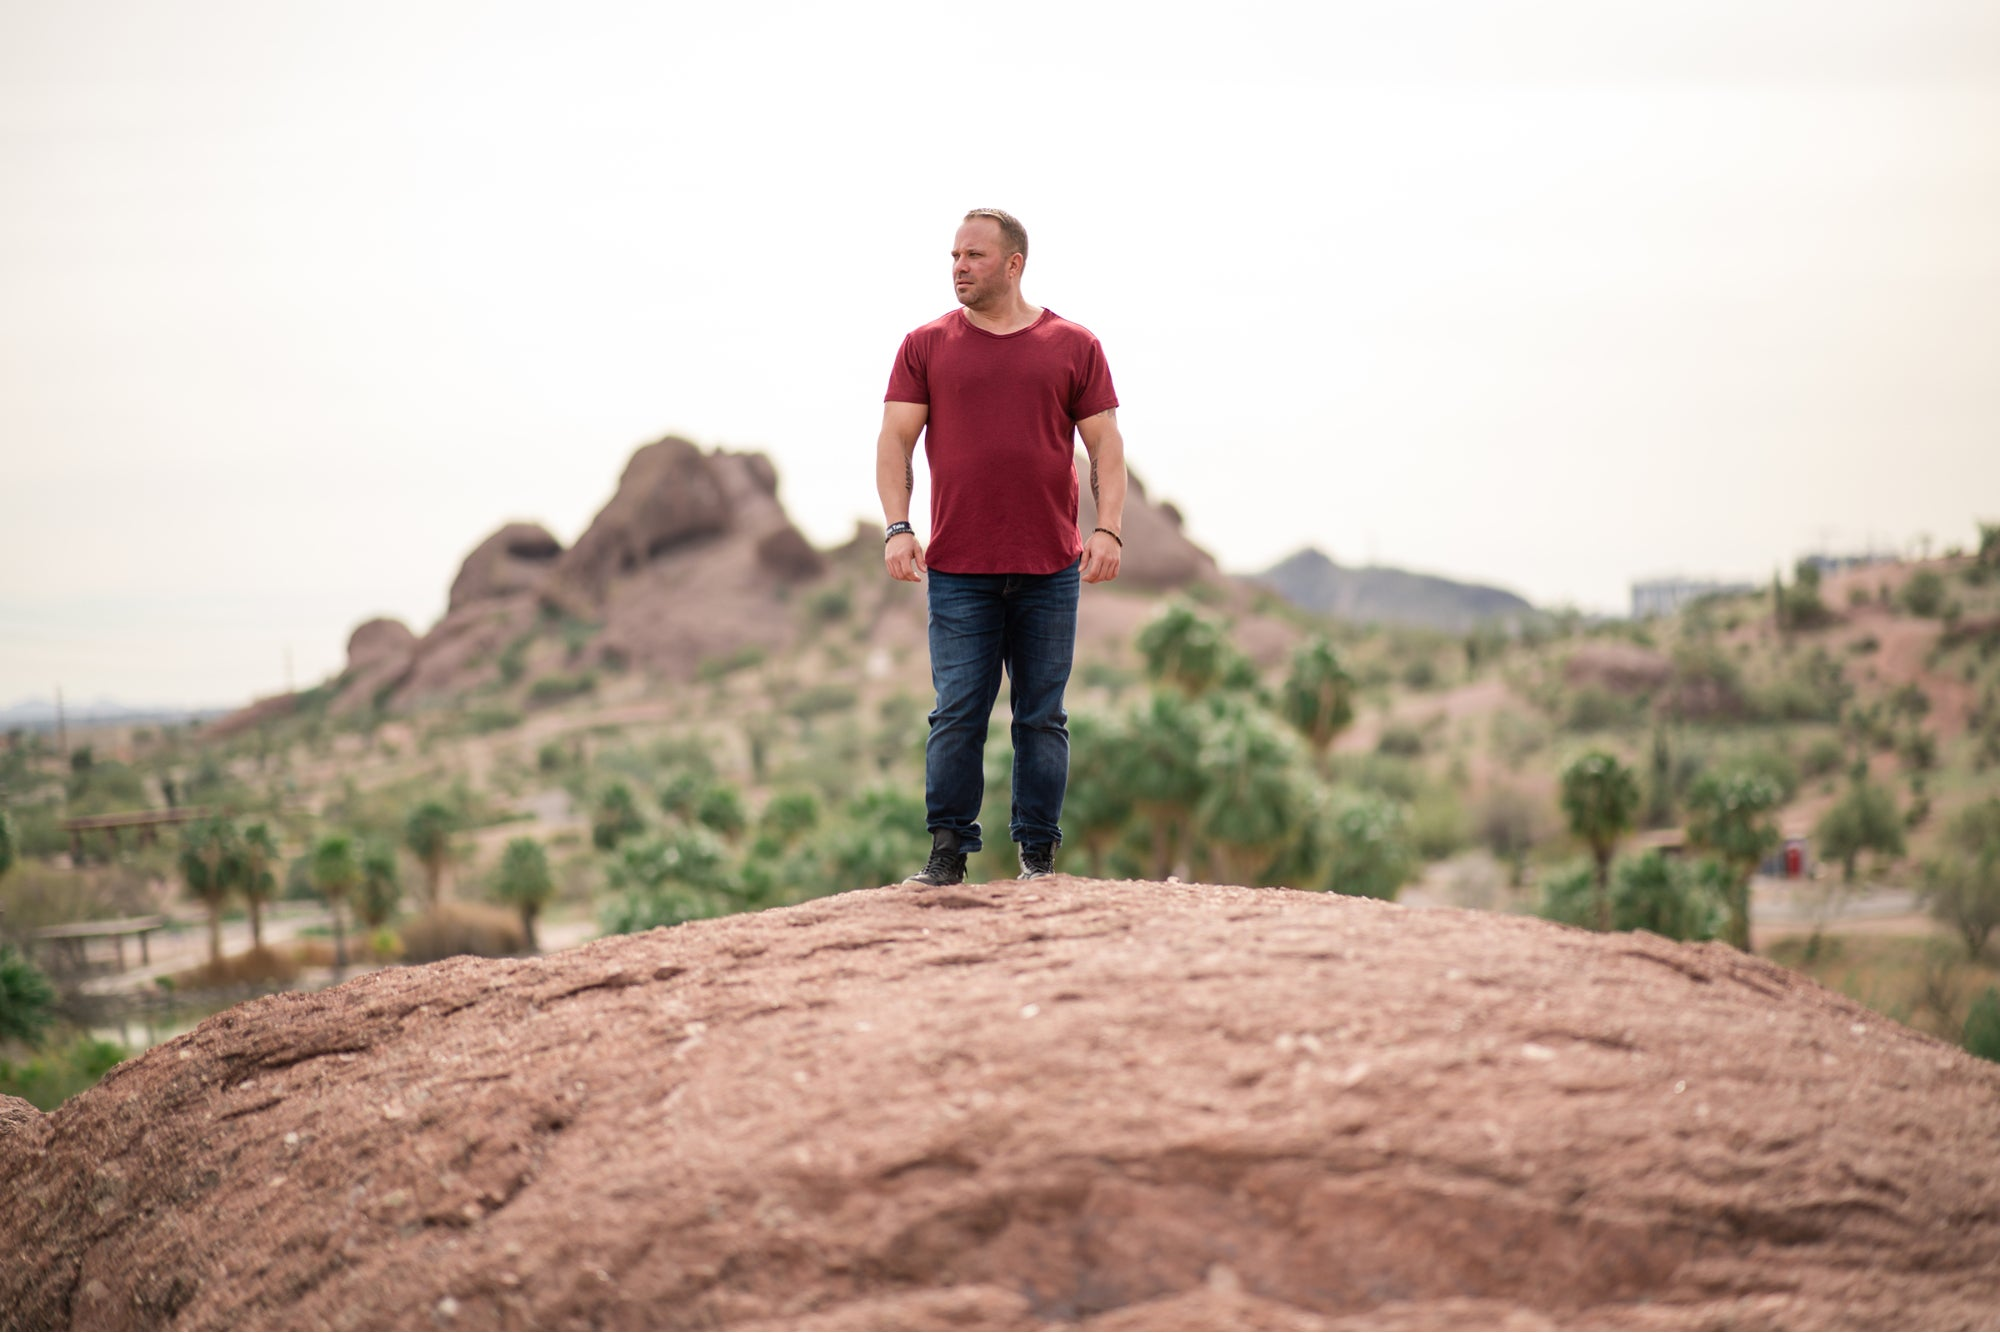 3 Steps for Taking Personal Development to the Next Level